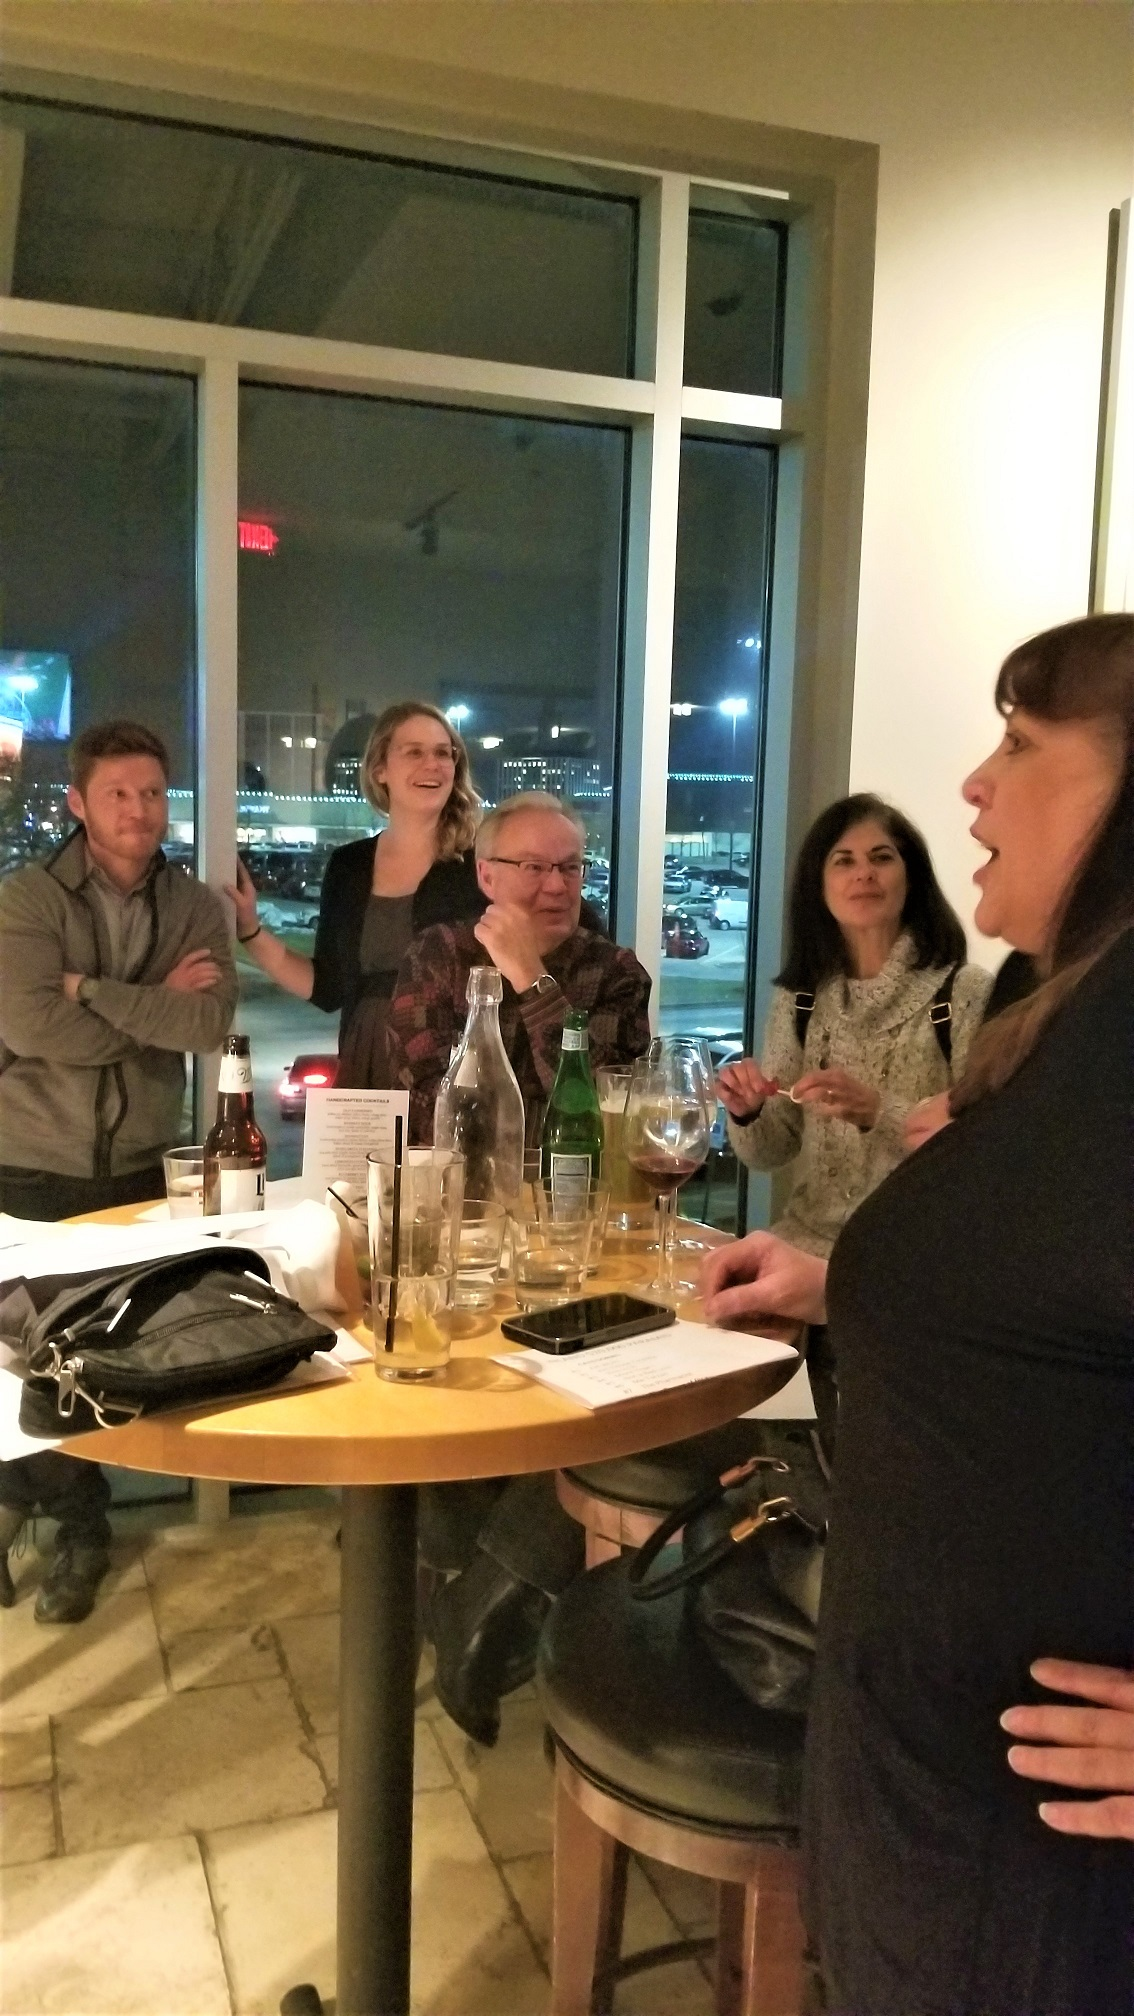 IMC celebrated its 2018 Holiday Party at Pinstripes Oak Brook with an evening of bocce ball, good food and great company!